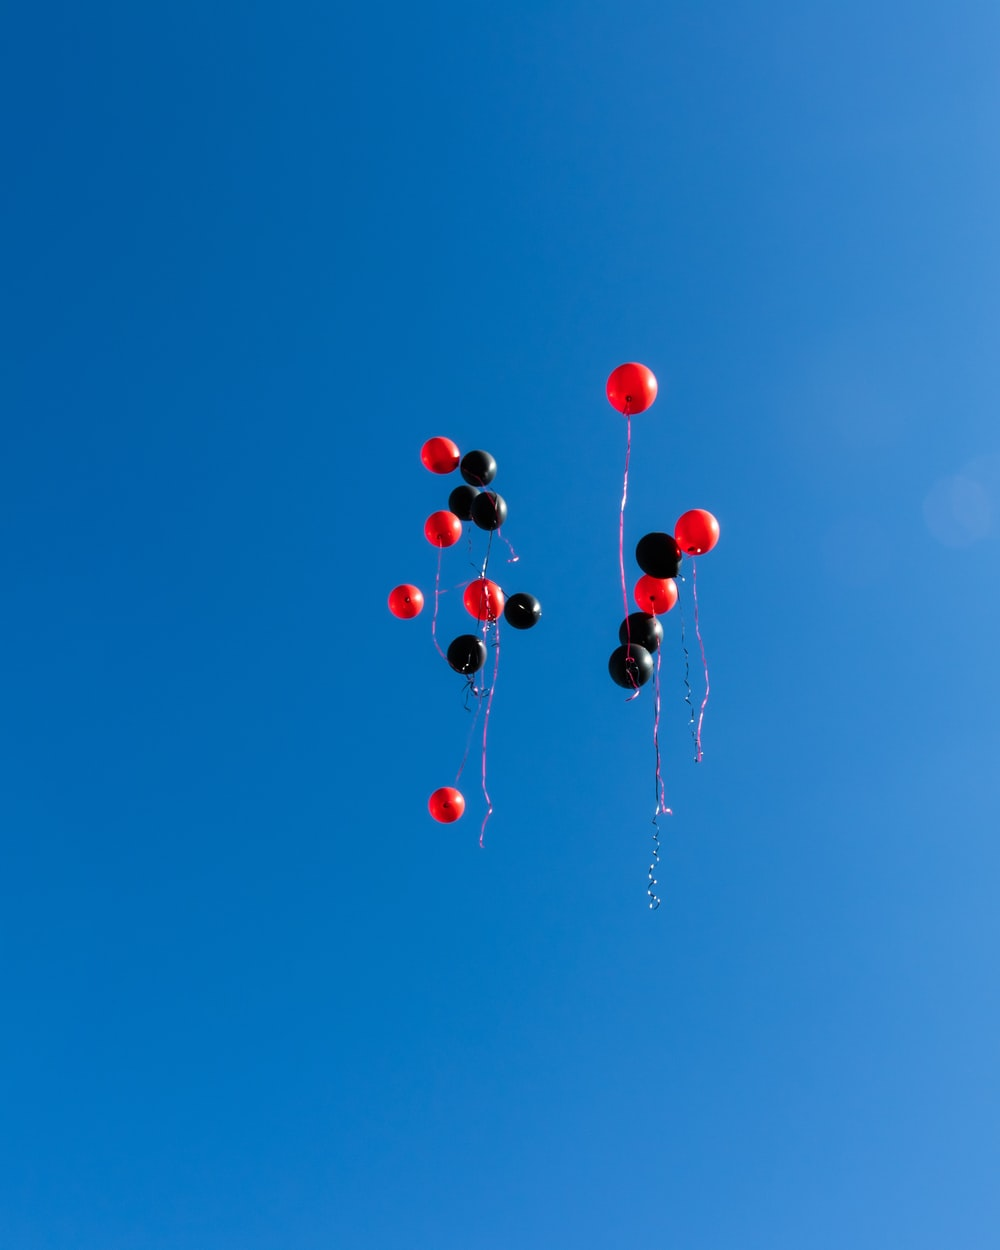 red and black balloons